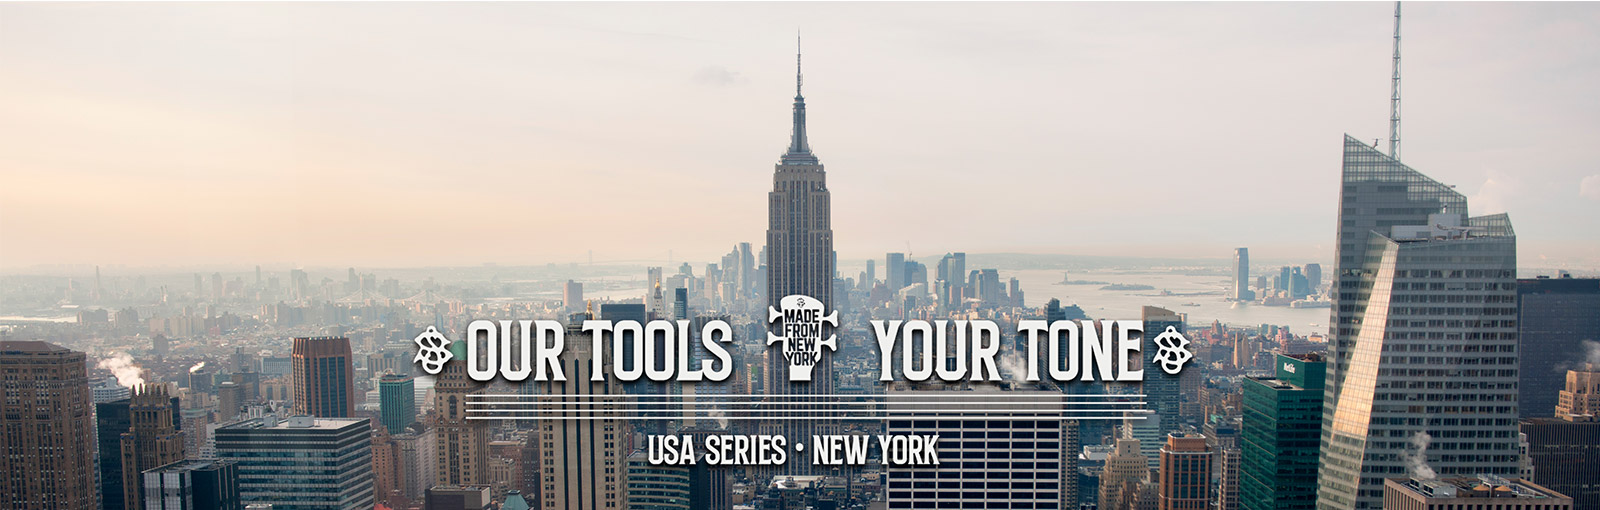 New York skyline with text Our Tools, Your Tone, USA Series, New York